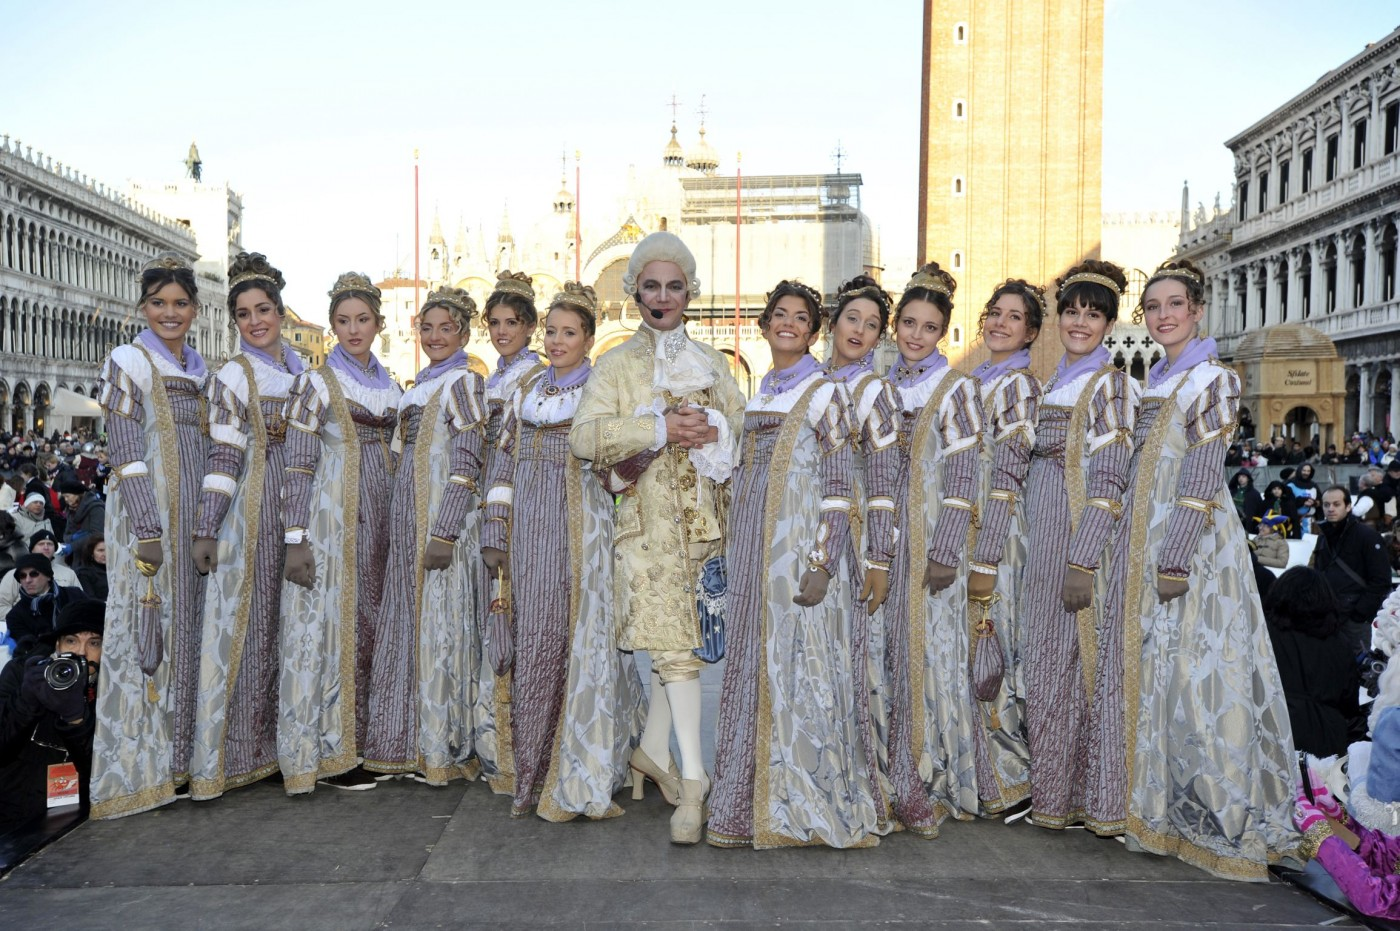 VENICE CARNIVAL 2016 - PROGRAM & EVENTS